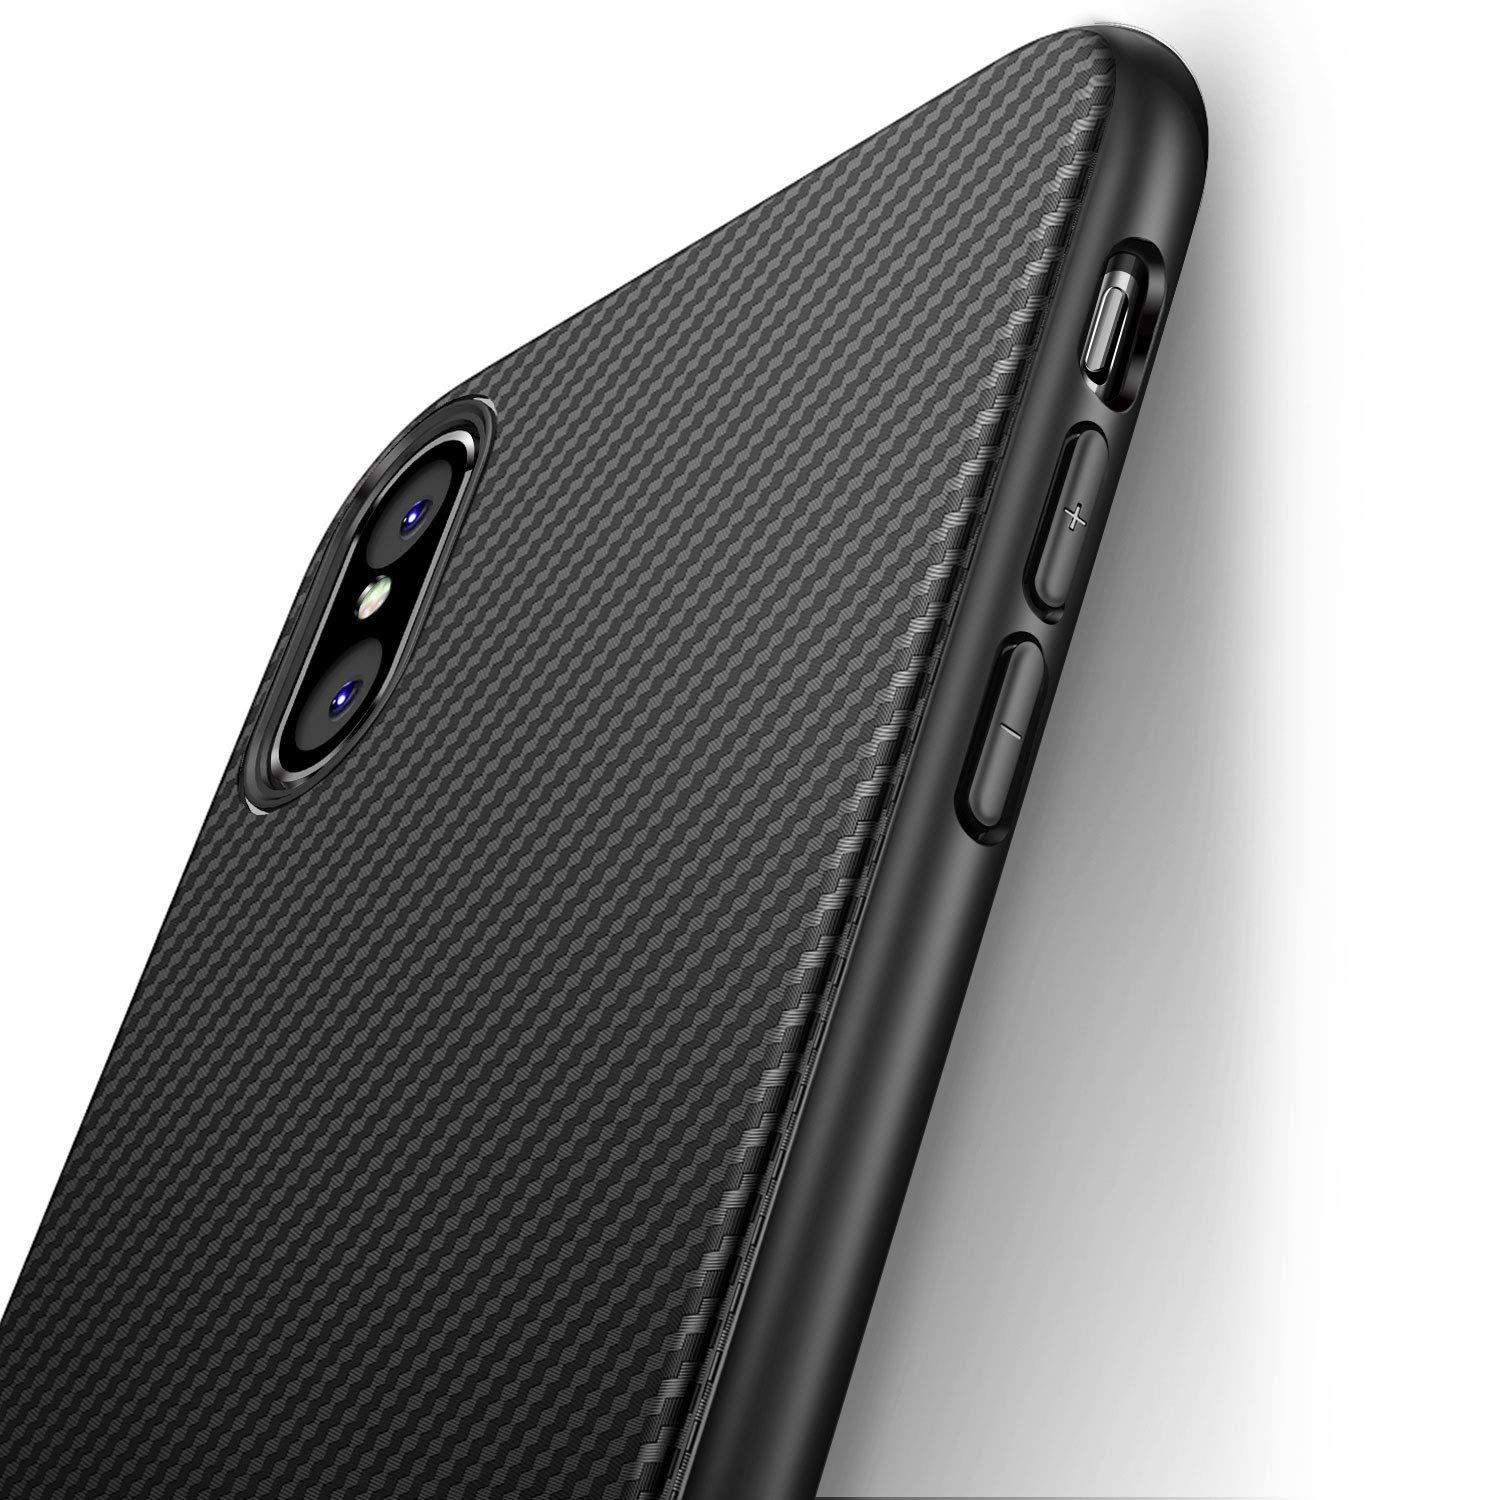 iCOCEN iPhone Xs Max Case [Carbon Fiber Texture Design] Durable Light Shockproof Cover Full Protective Slim Fit Shell Soft TPU Silicone Gel Bumper